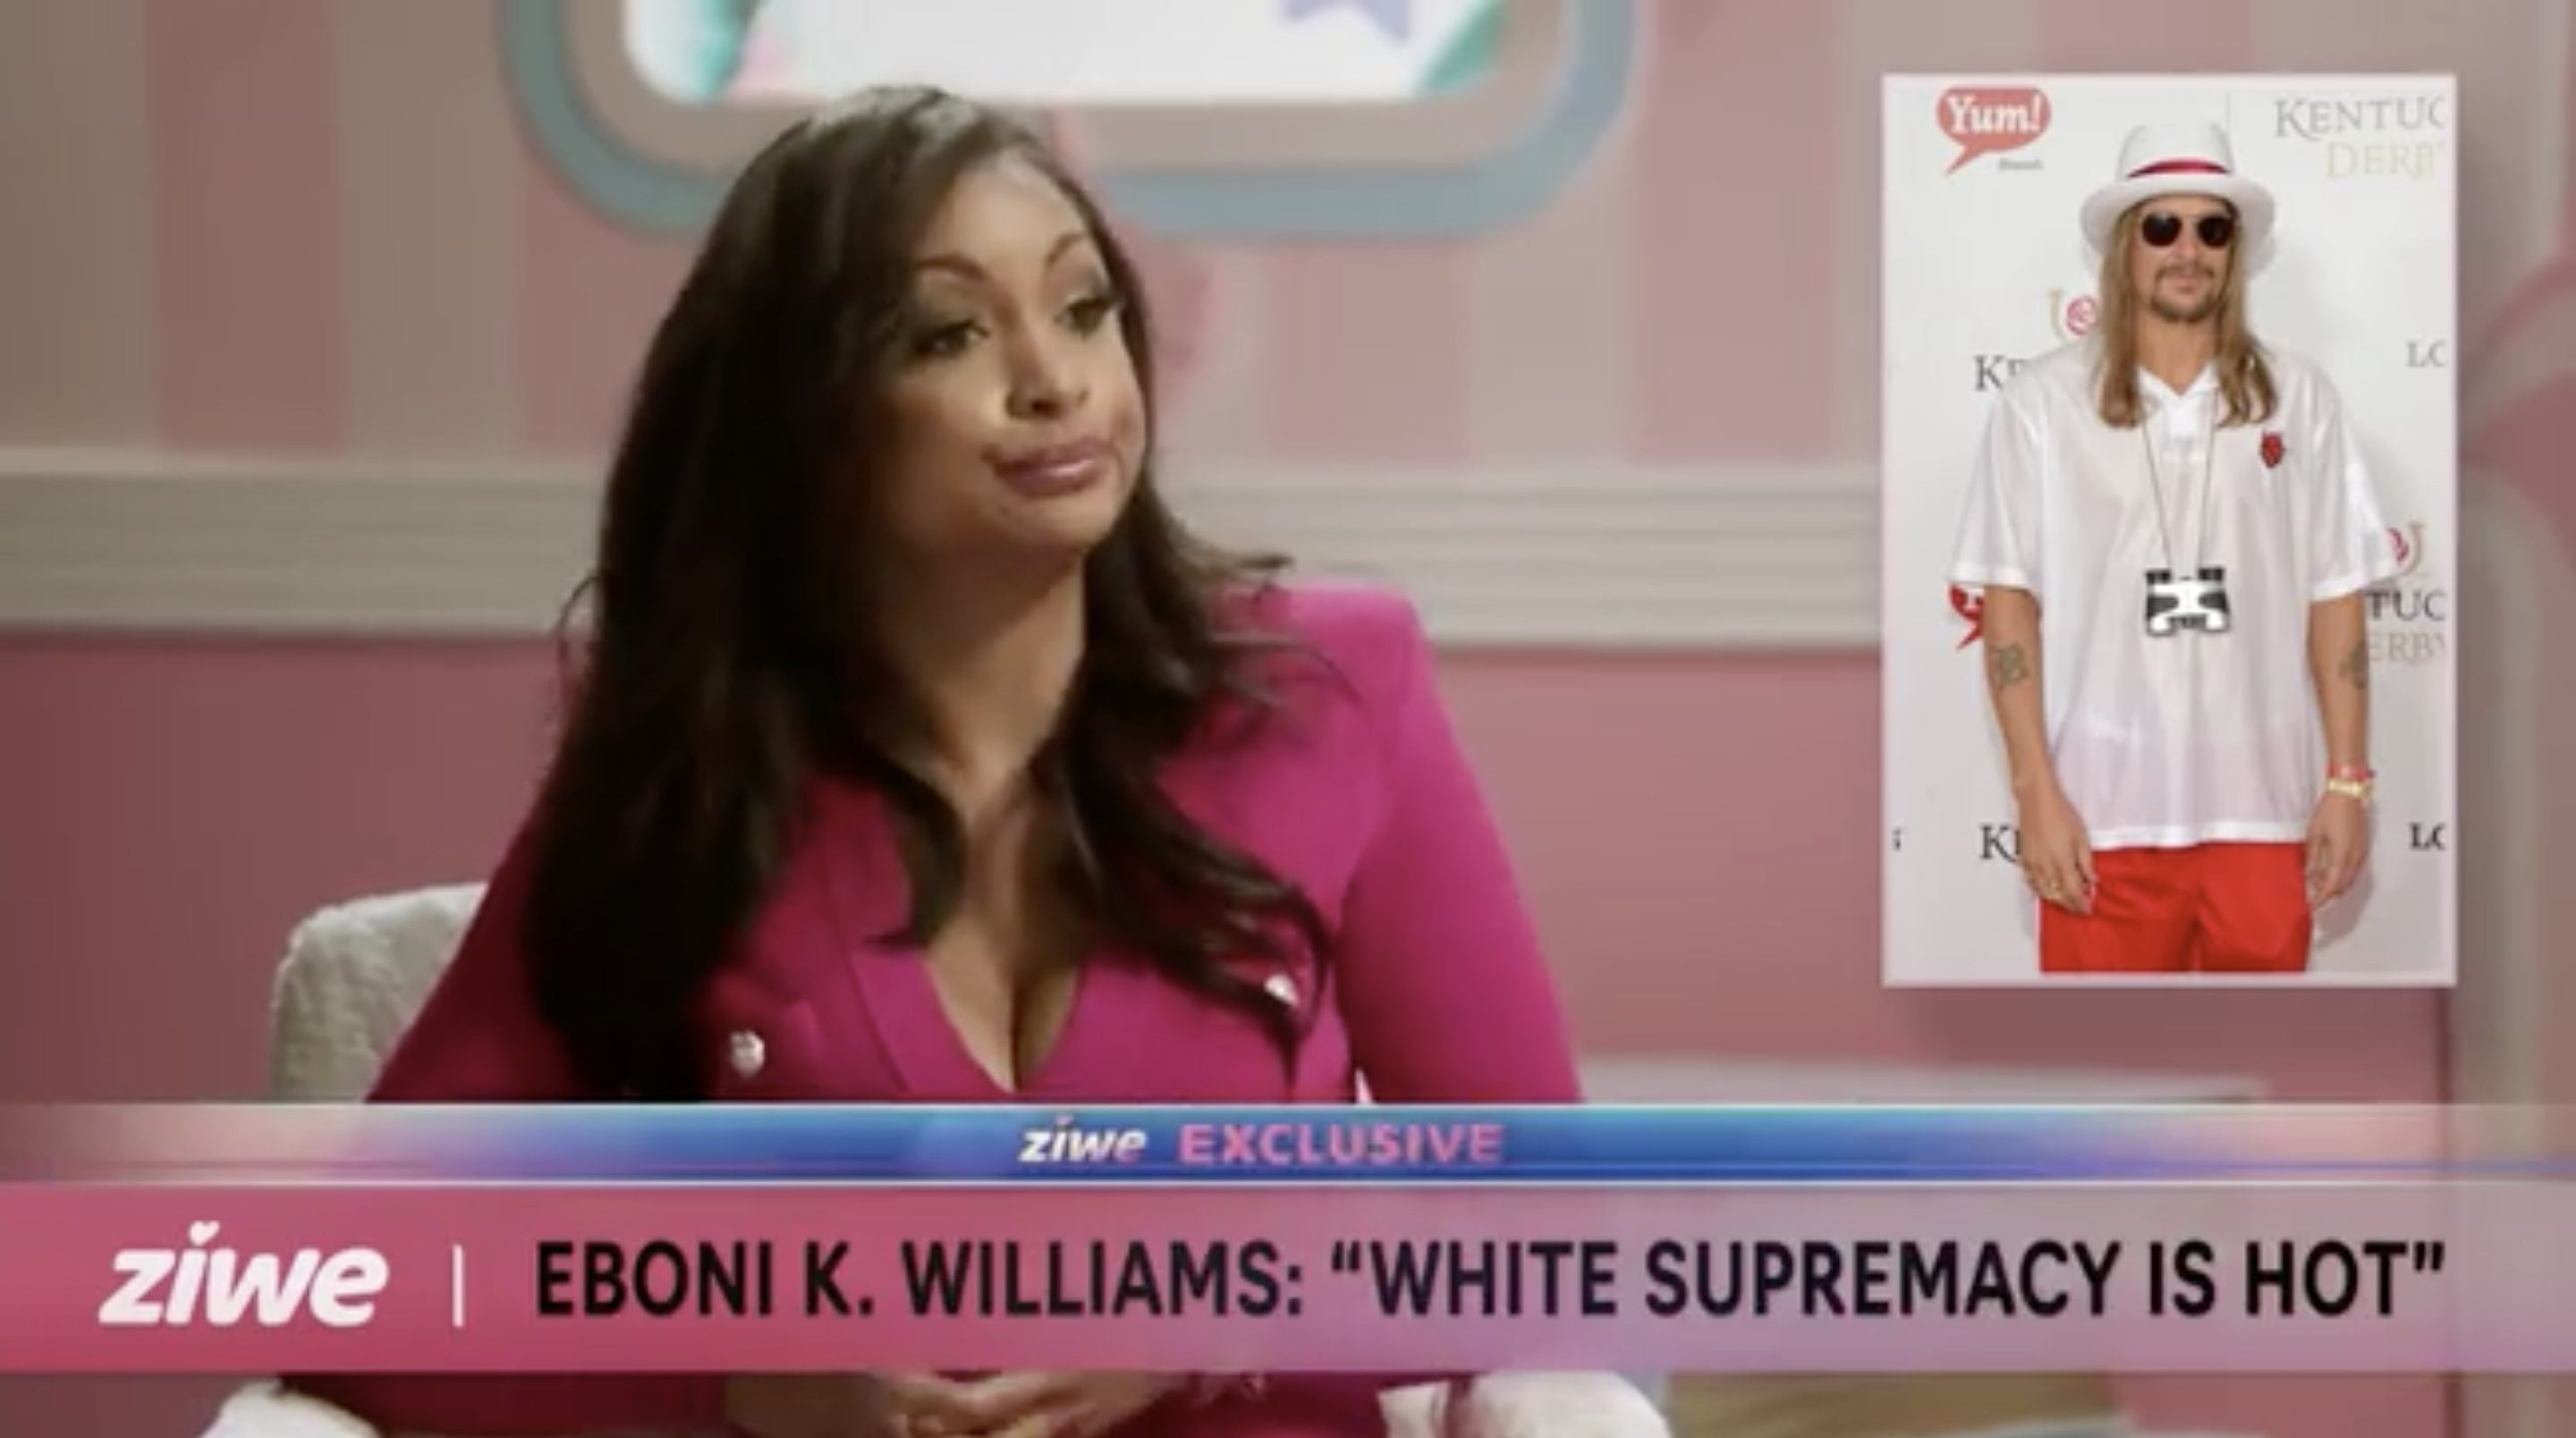 """Eboni K. Williams being interviewed by Ziwe, the subtitle card reads, """"Eboni K. Williams: White Supremacy is Hot"""""""